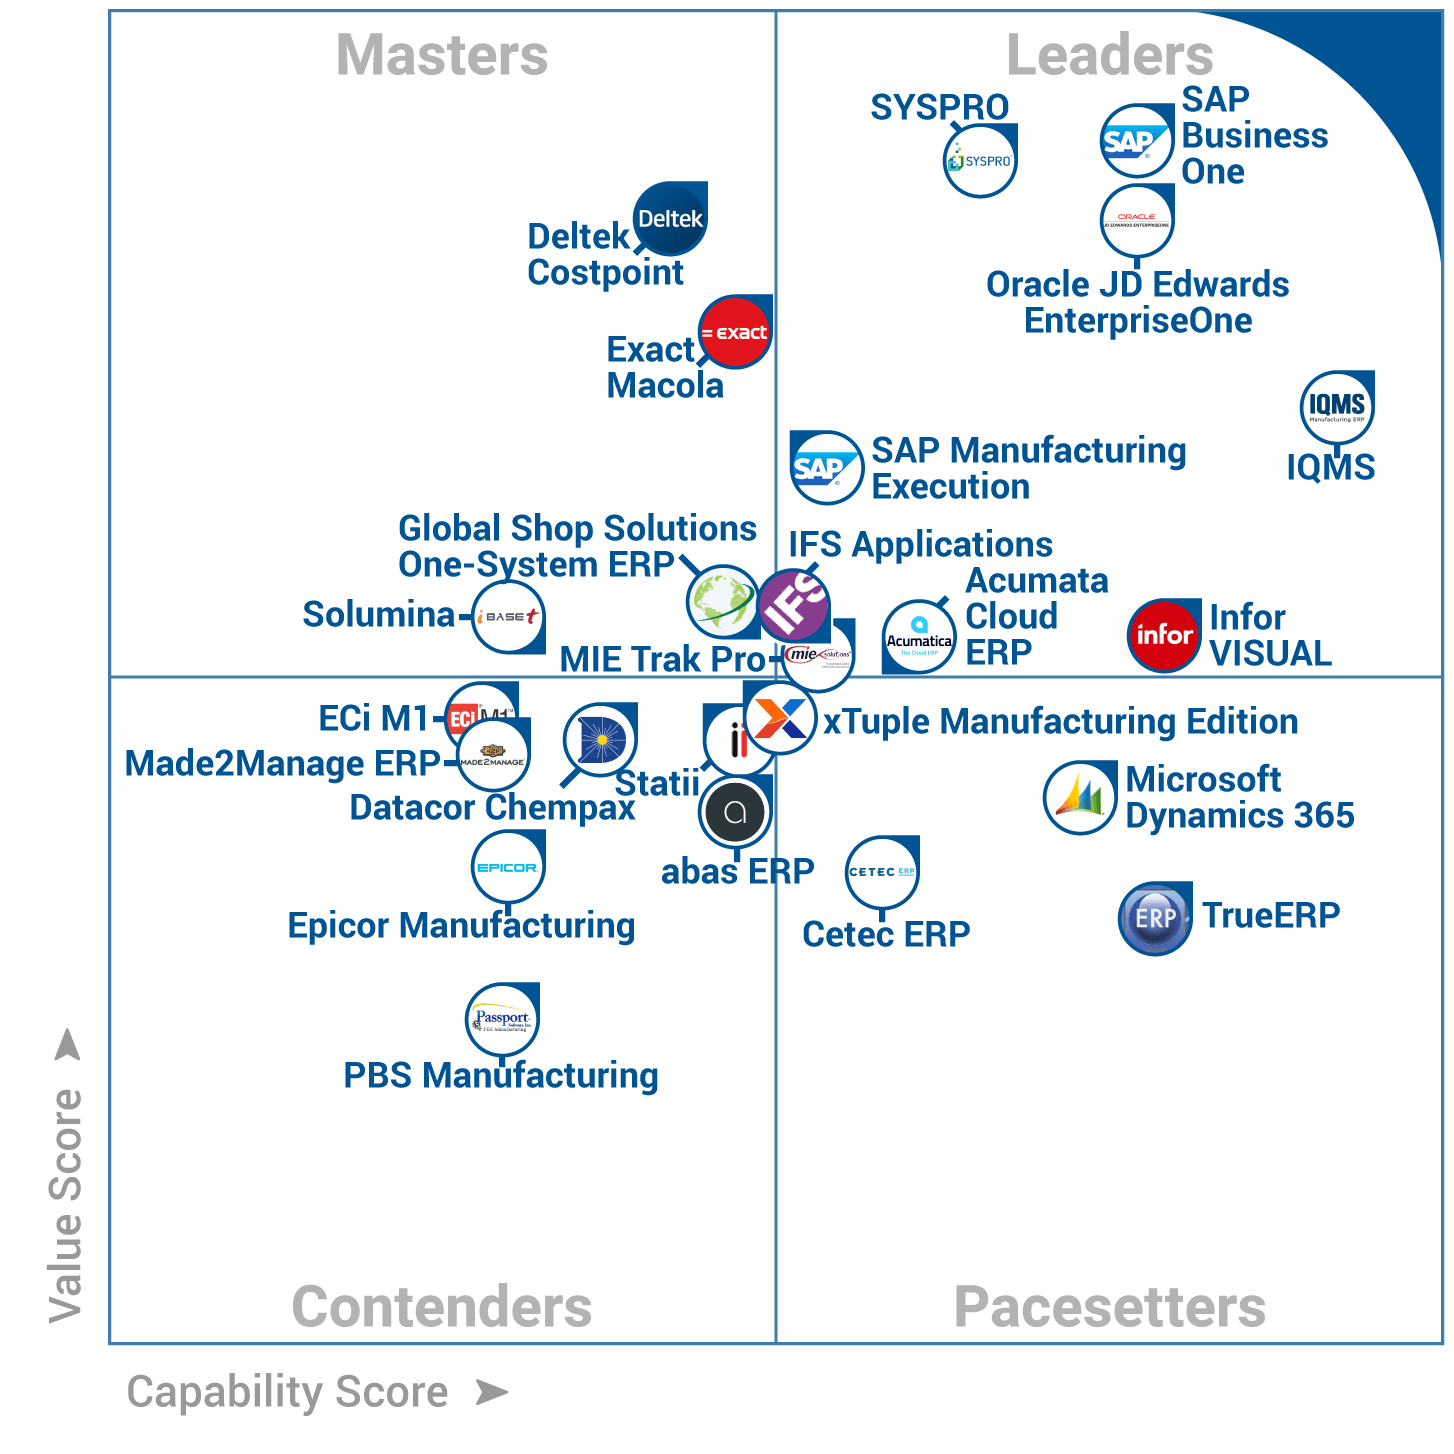 Acumatica Named A Leader On The 2017 Manufacturing